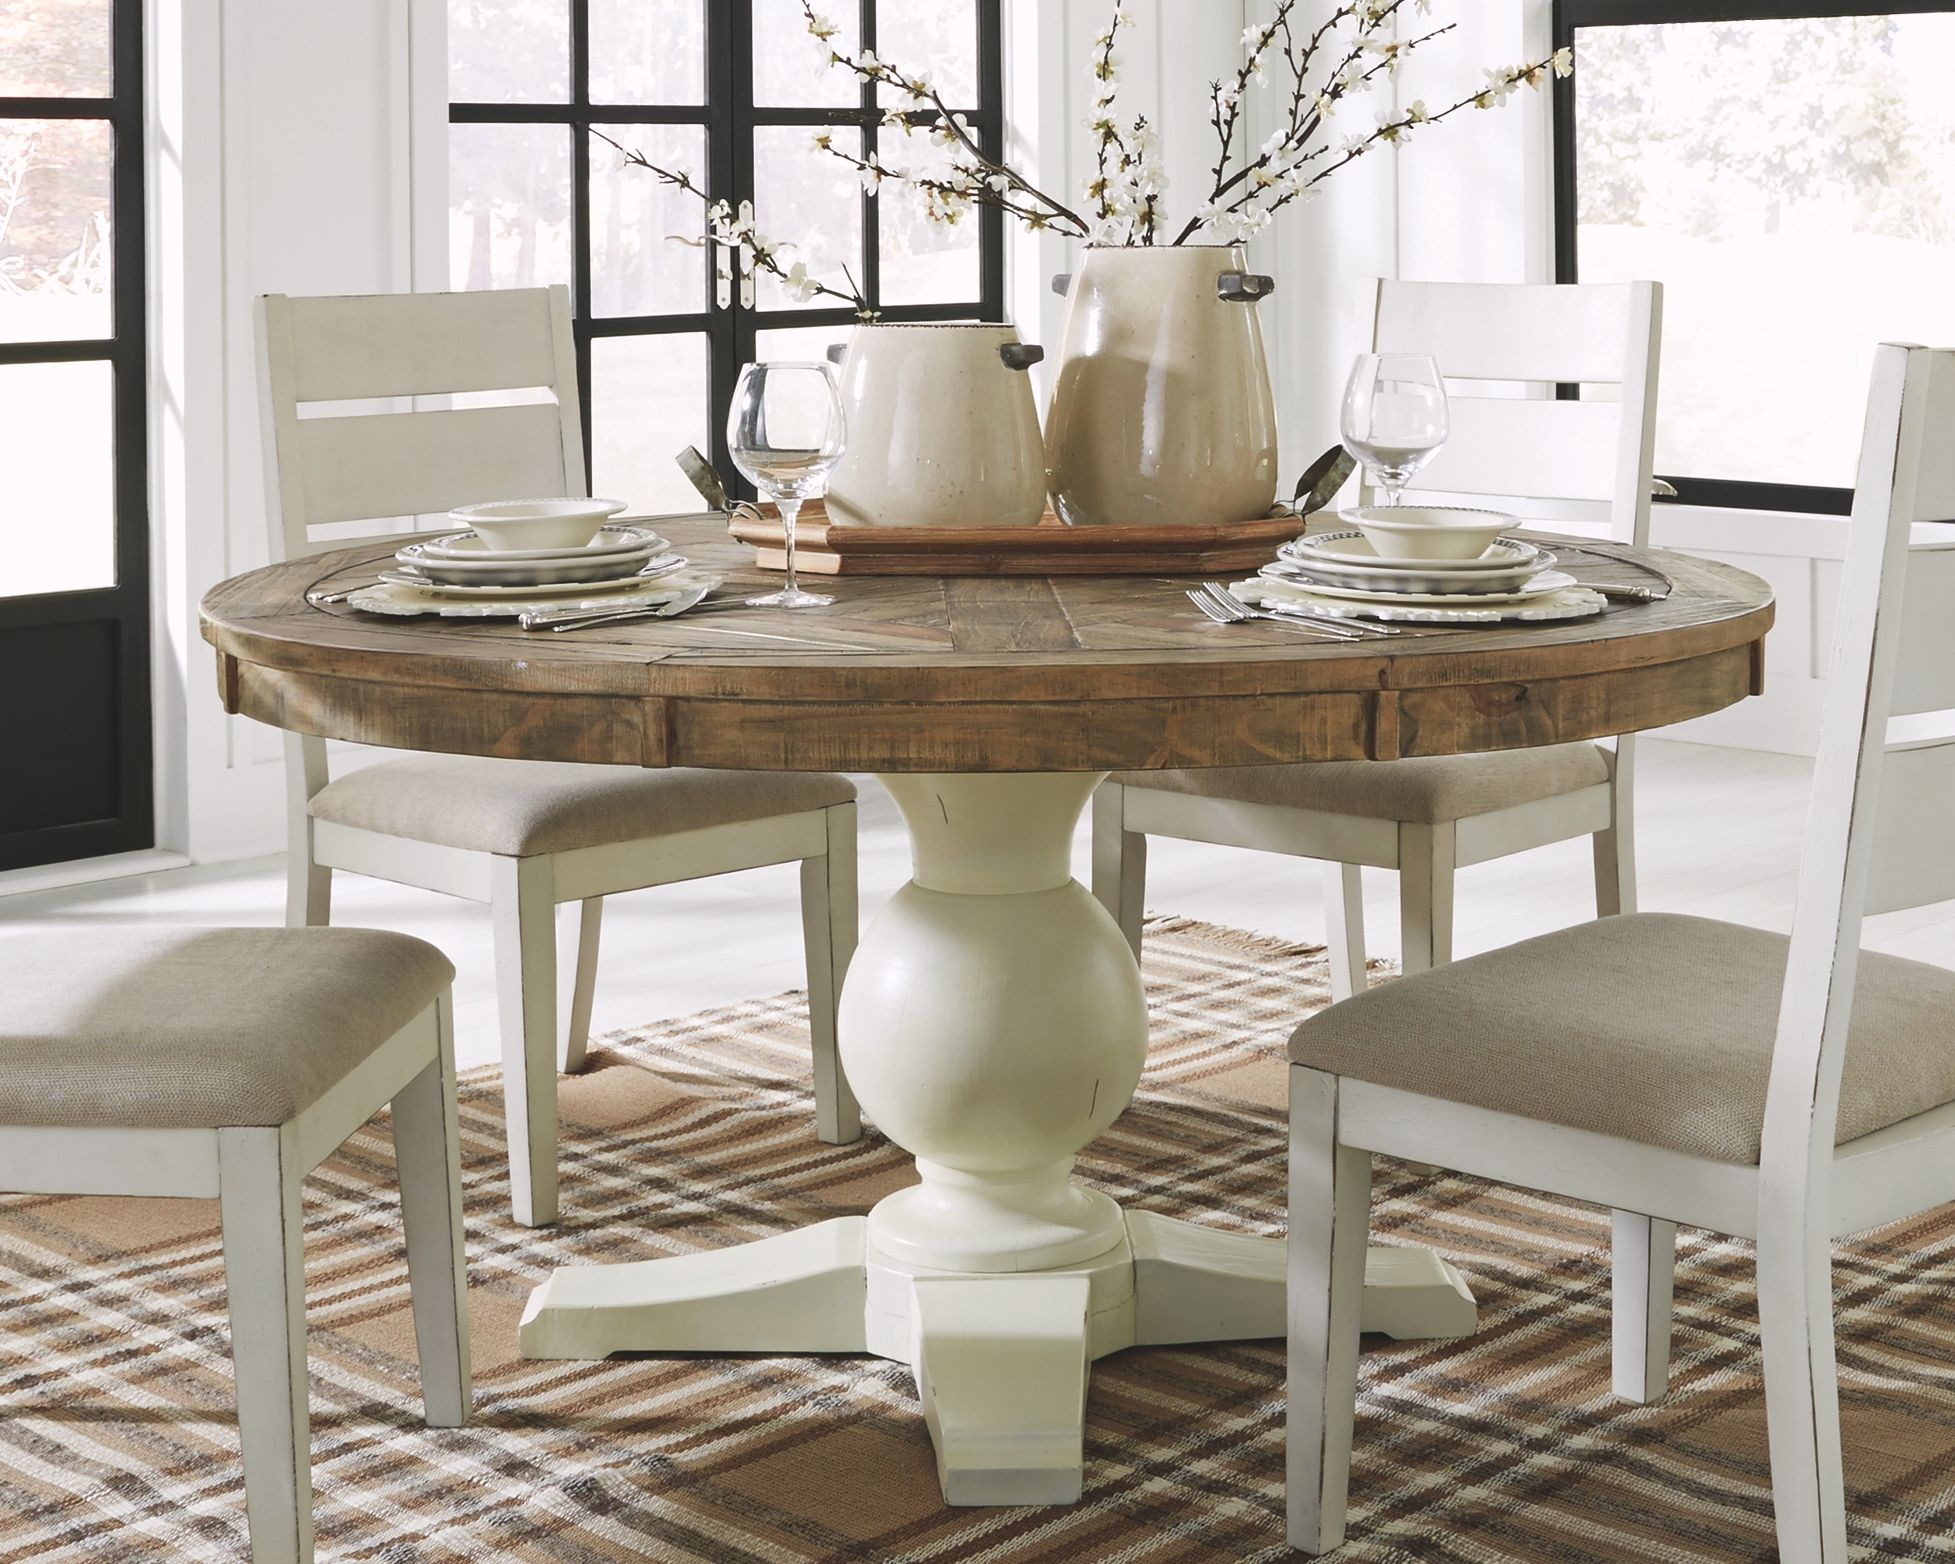 Pin On Dining Table Design Ideas